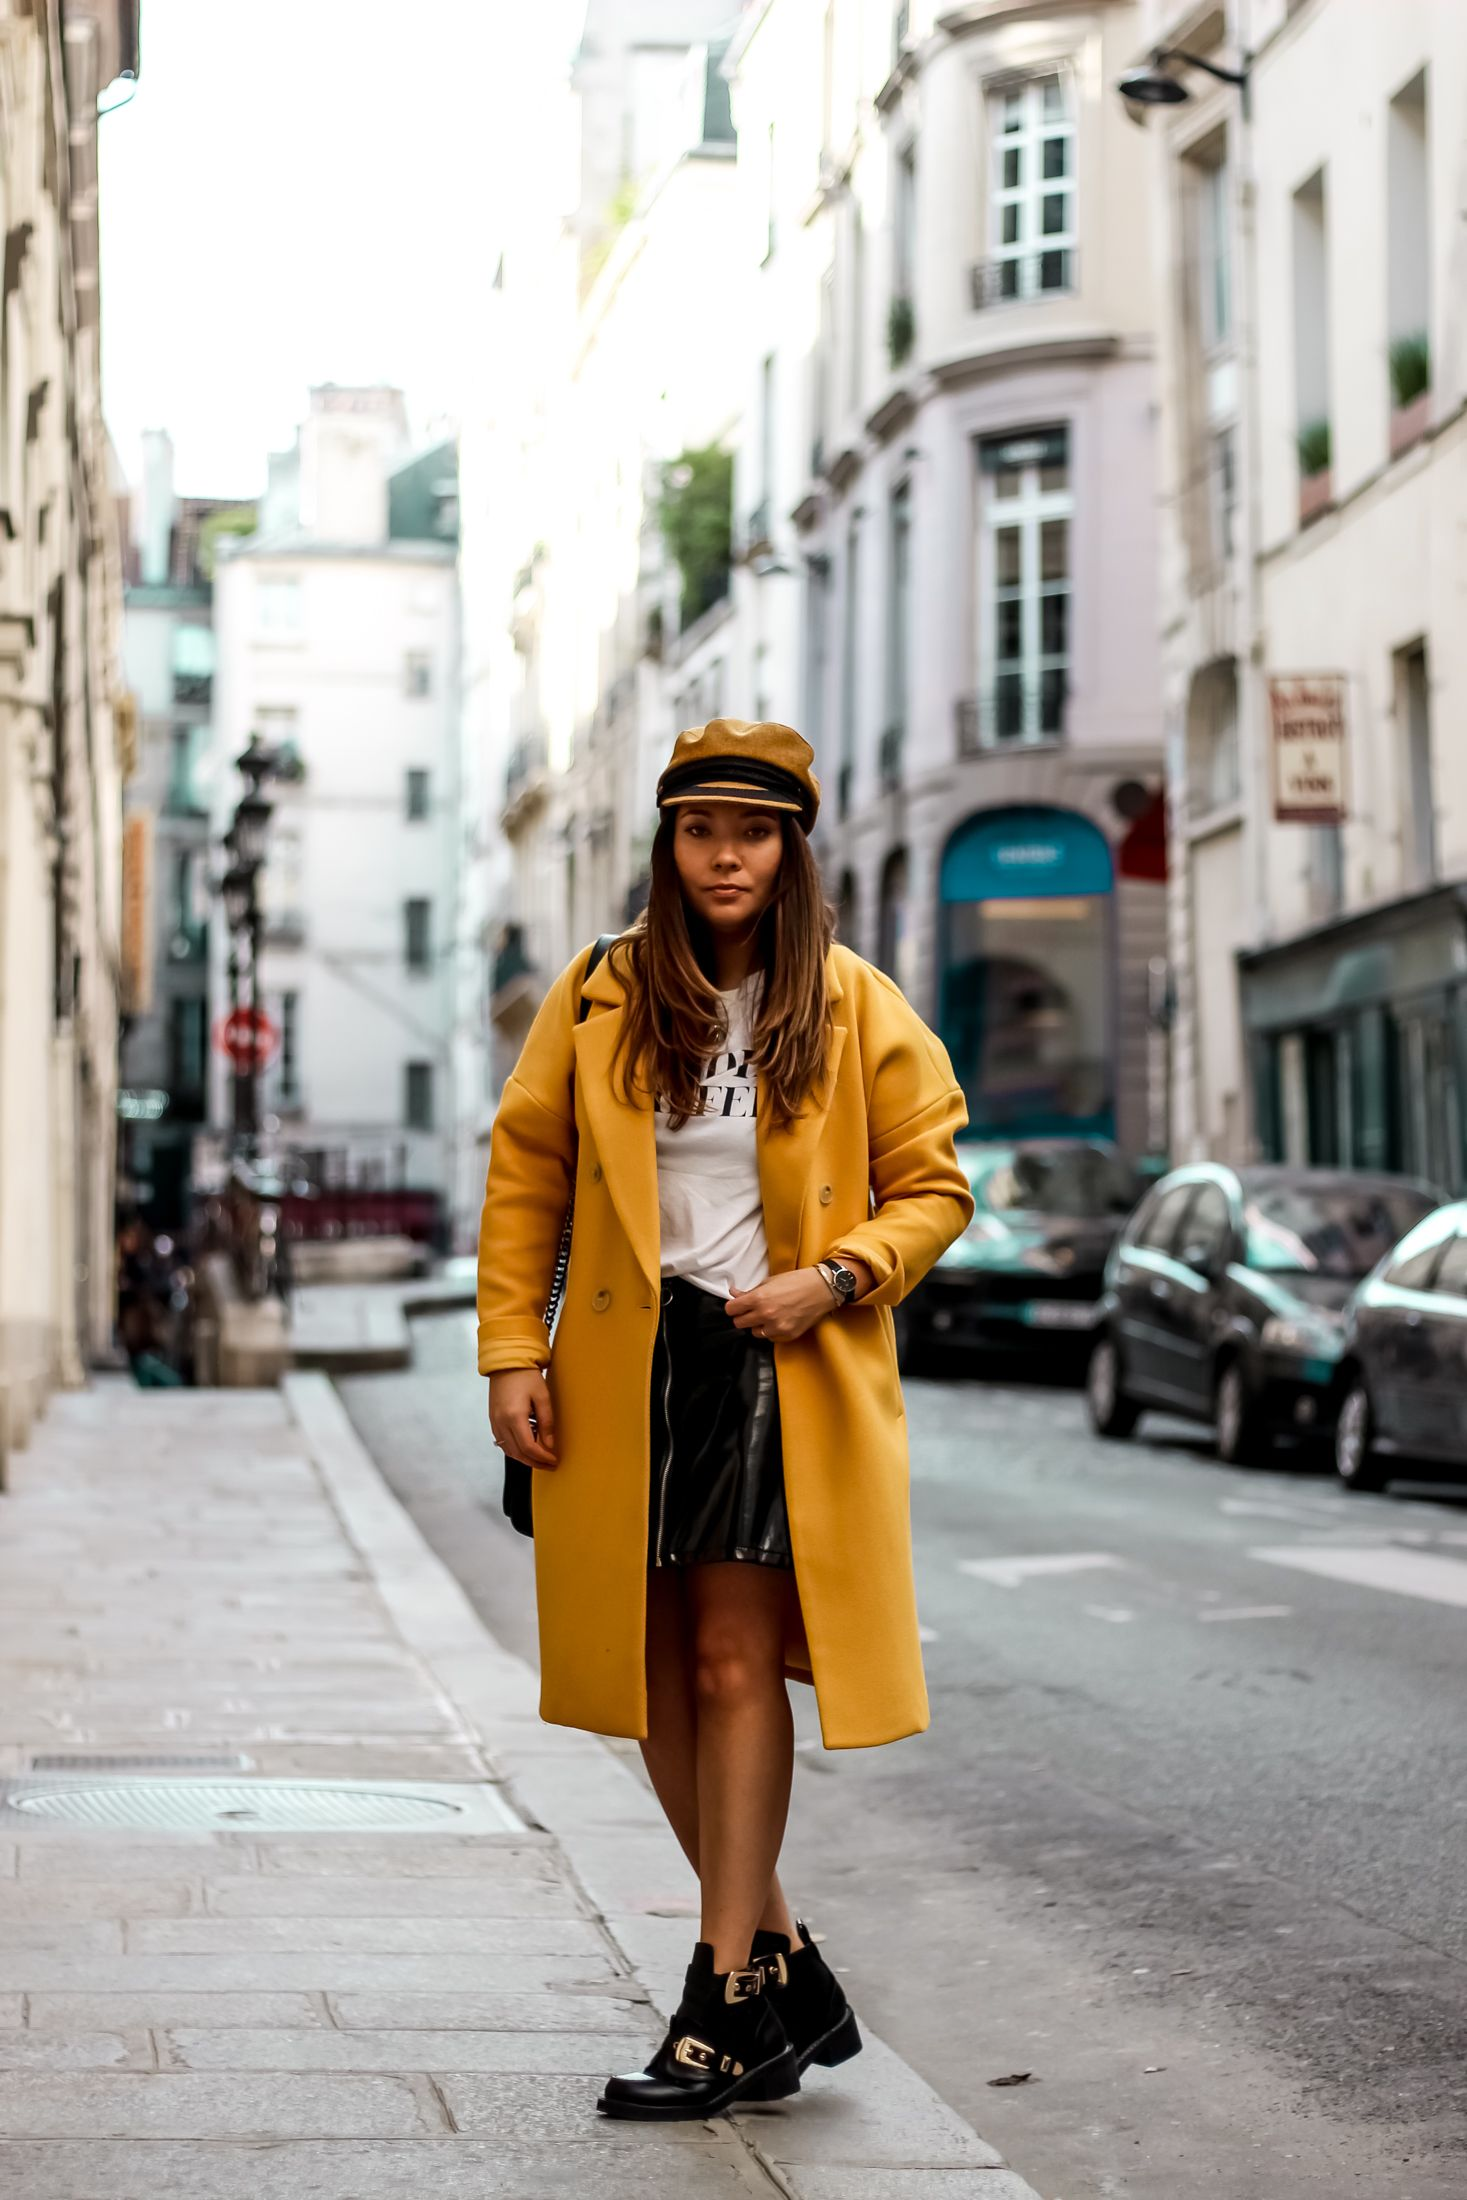 not your girl, shein, the green ananas, daniel wellington, montres femme, blog mode, blogueuse mode, manteau jaune, casquette marin, h&m, pimkie, yellow, jupe vinyle, balanciaga boots